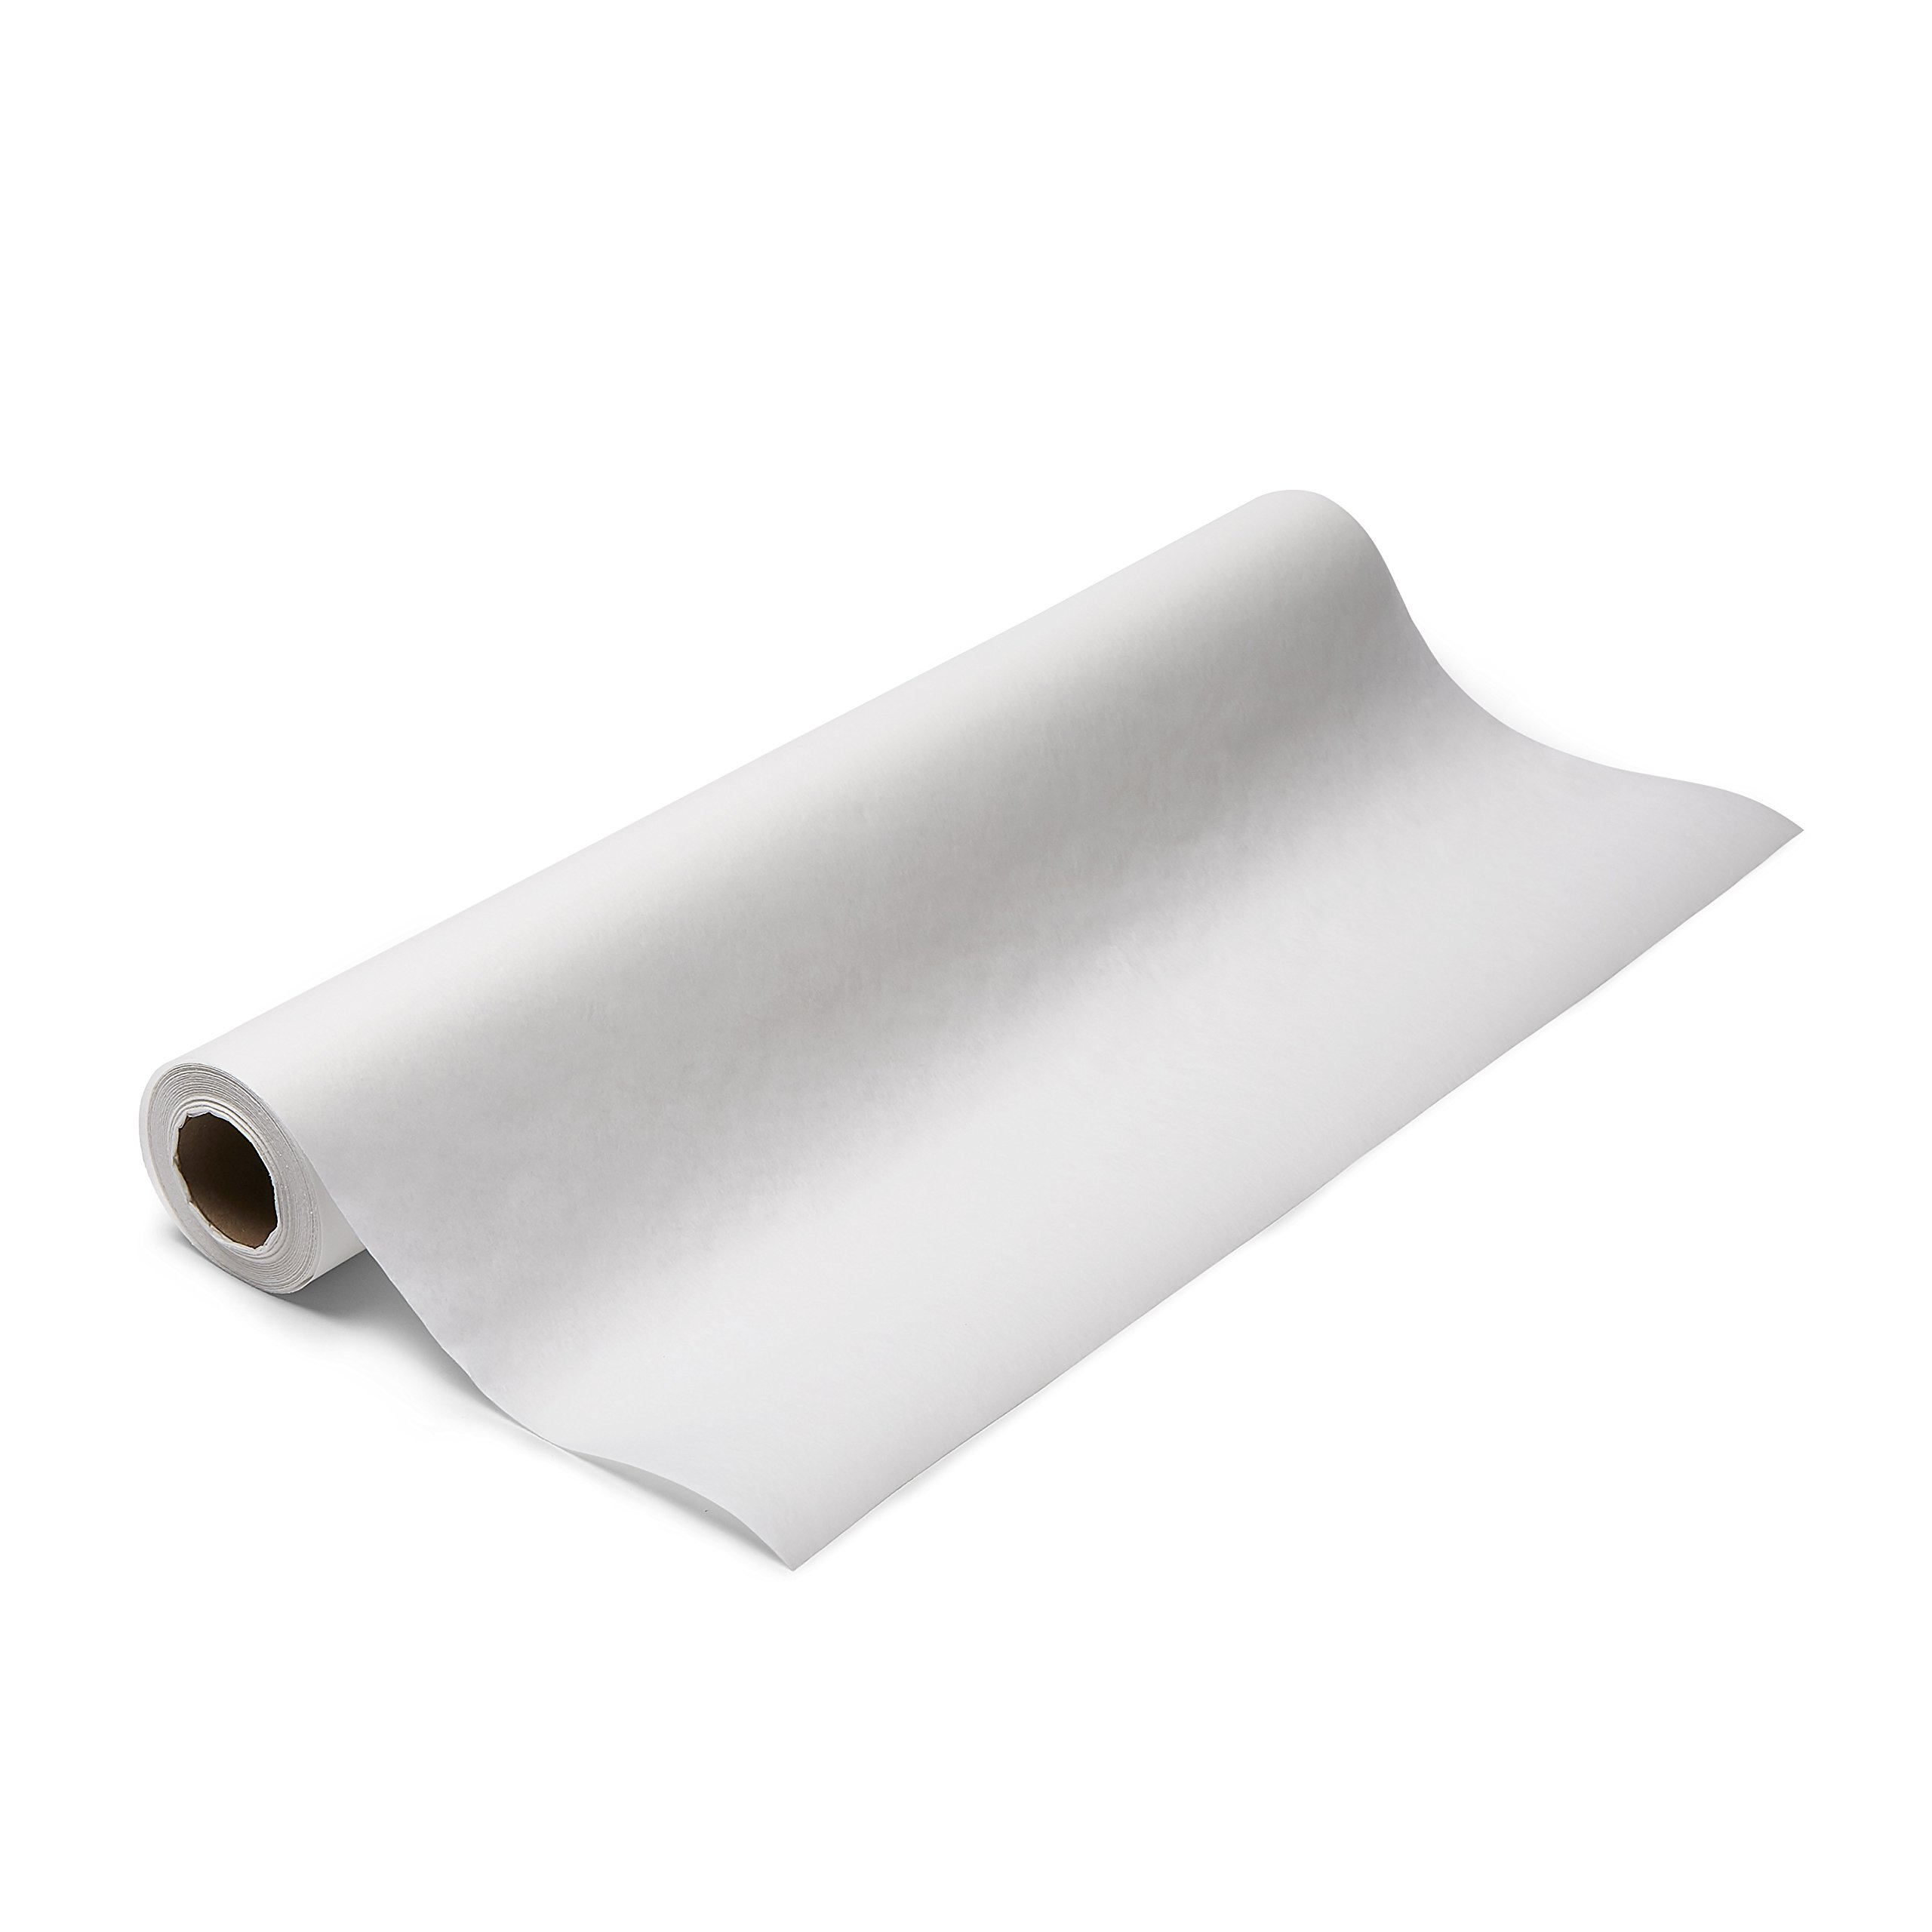 Medline Medical Exam Table Paper, Smooth Table Paper, 21 inches x 225 feet, Case of 12 Rolls